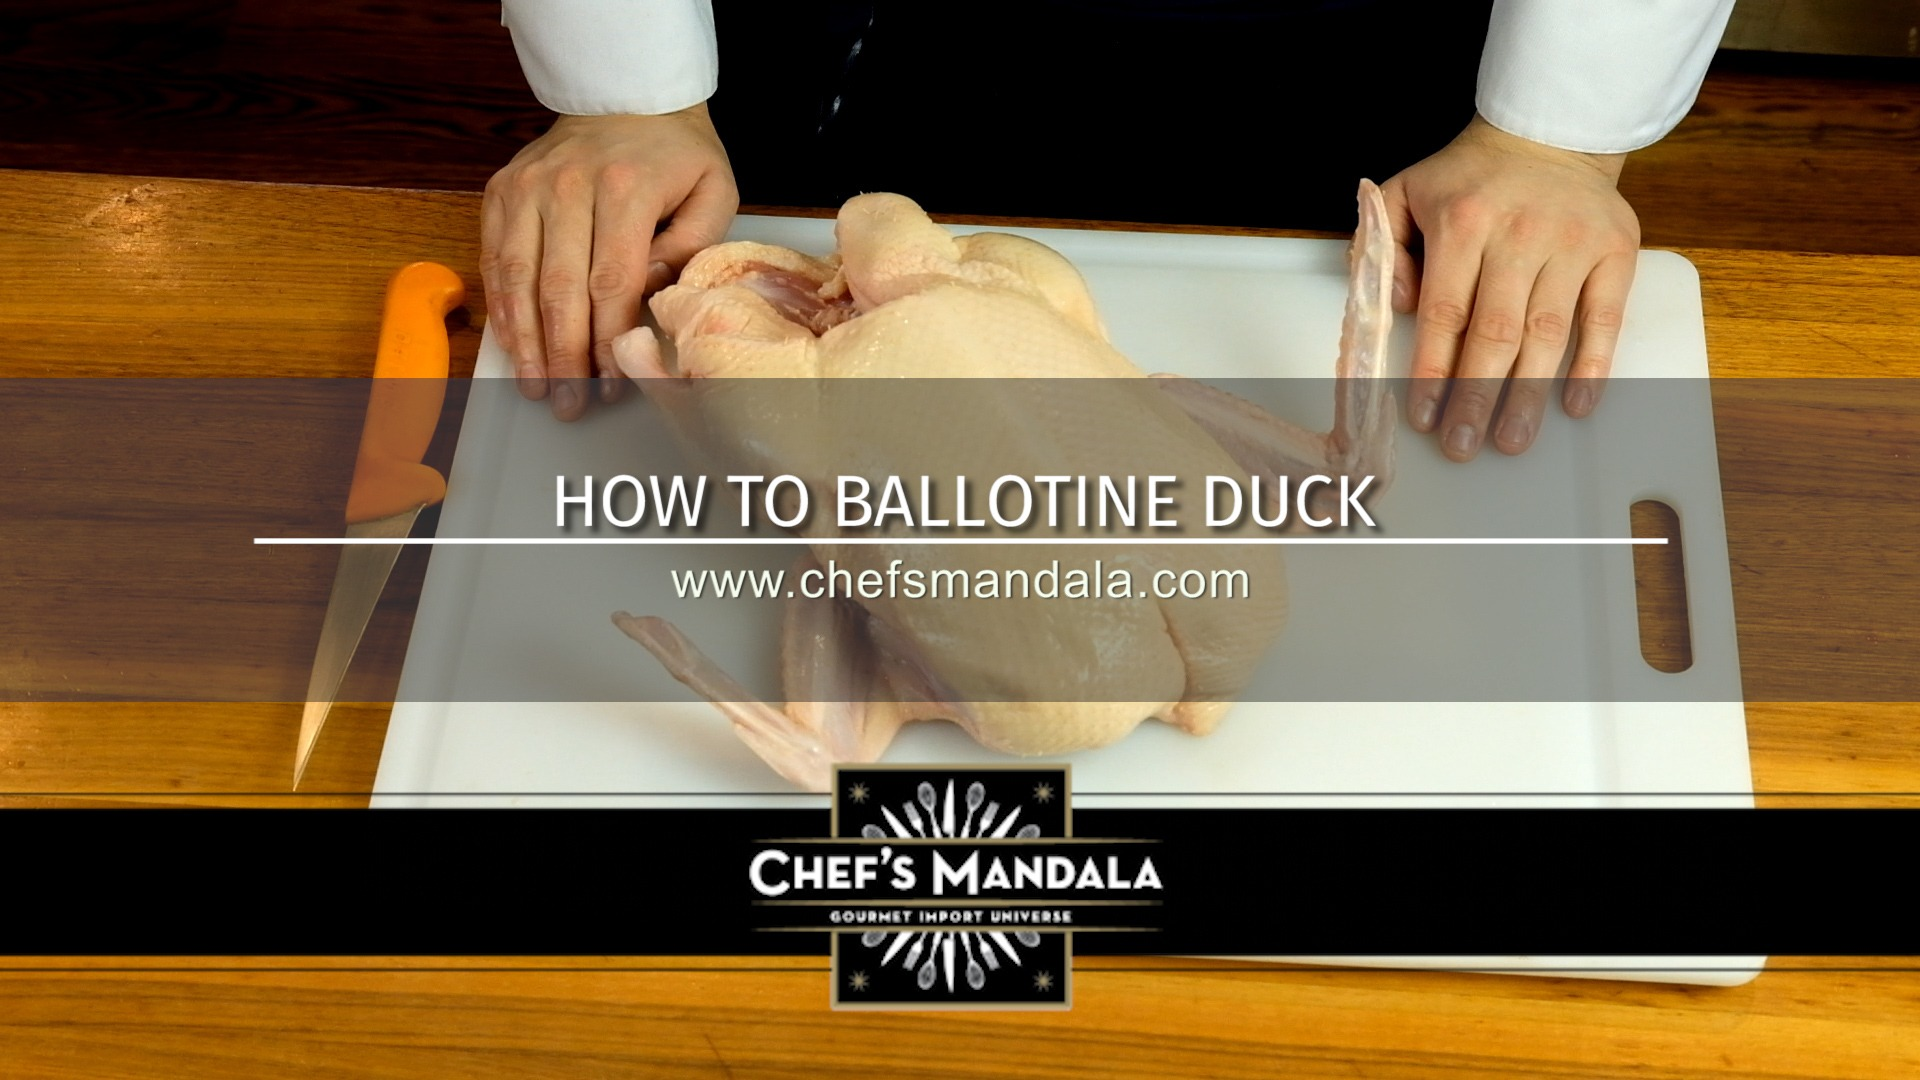 Chef's Mandala How to Ballotine a Duck